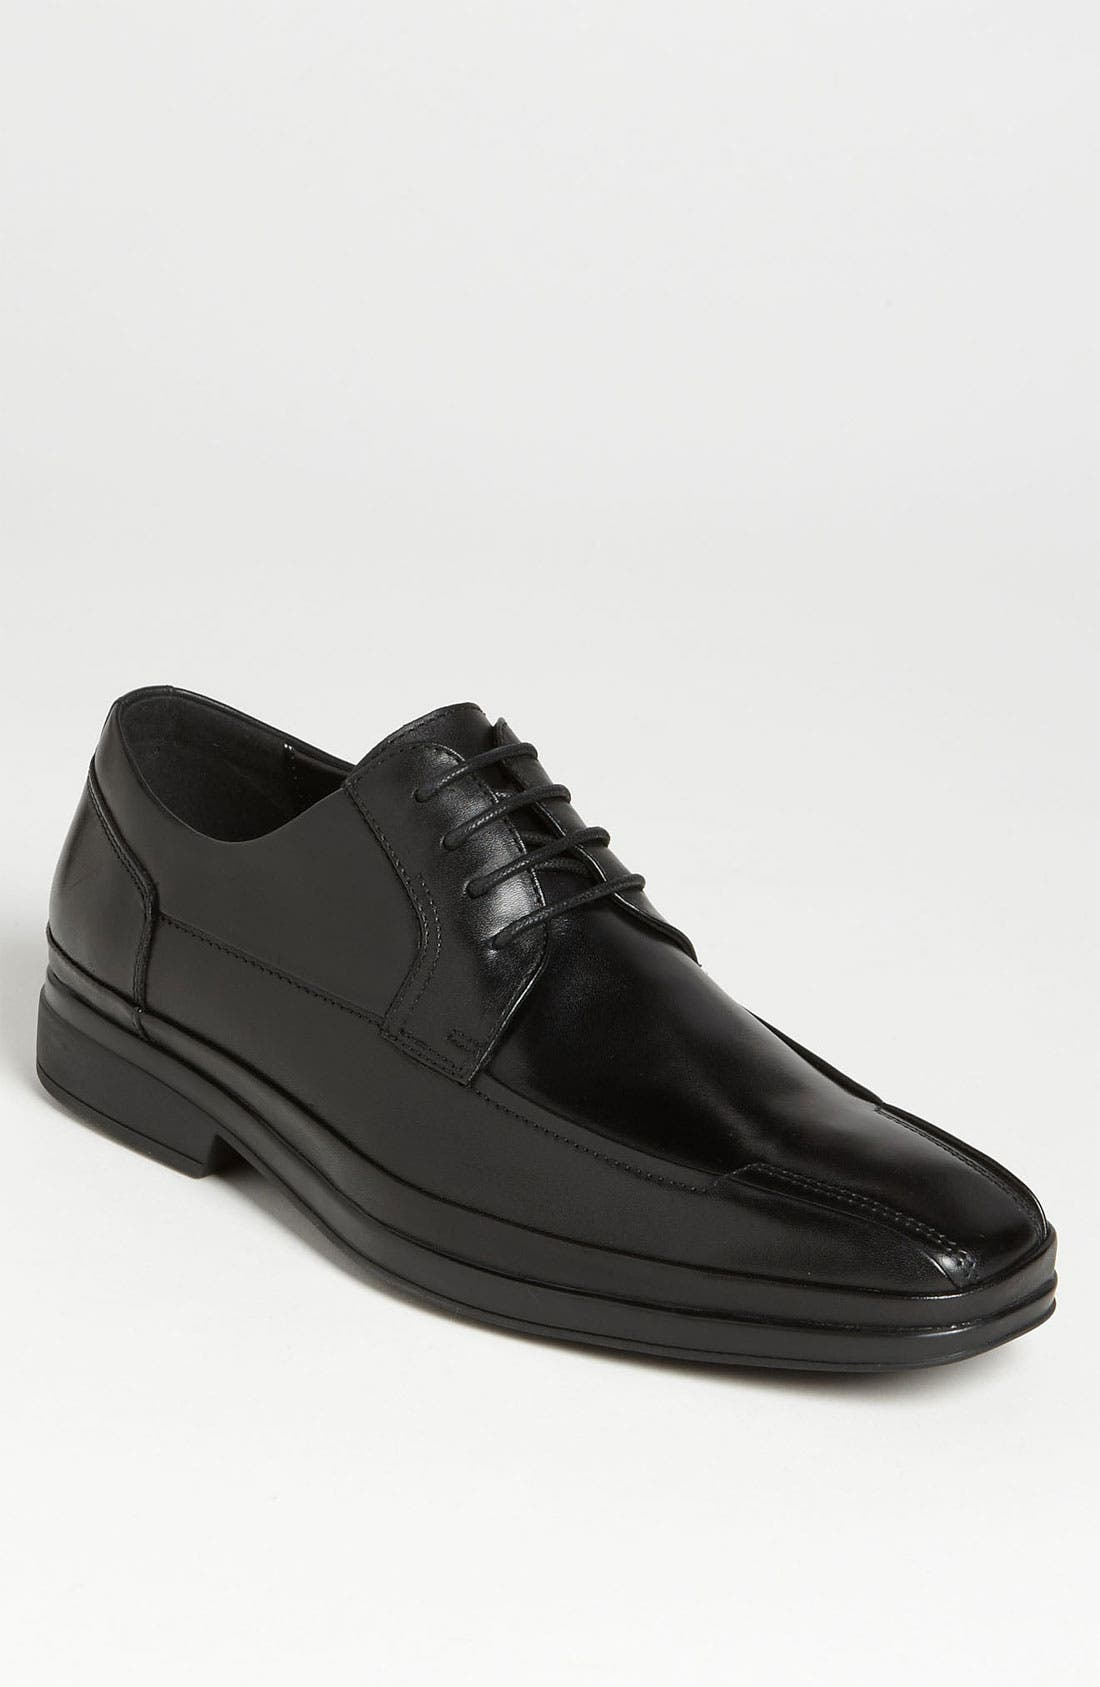 Main Image - Kenneth Cole New York 'Night Walker' Bicycle Toe Derby